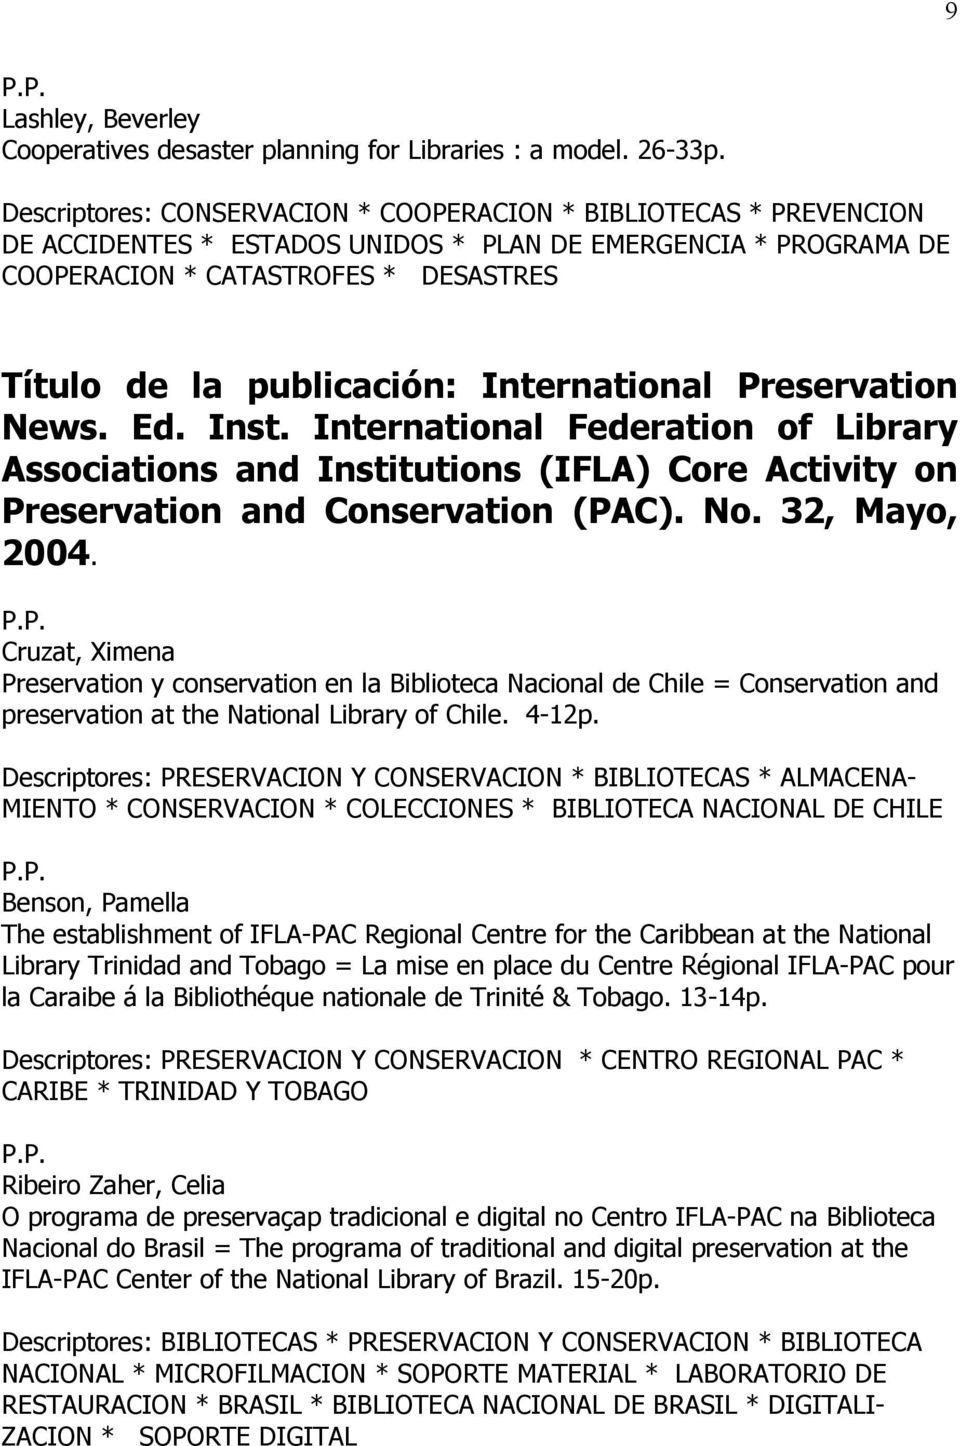 International Preservation News. Ed. Inst. International Federation of Library Associations and Institutions (IFLA) Core Activity on Preservation and Conservation (PAC). No. 32, Mayo, 2004.